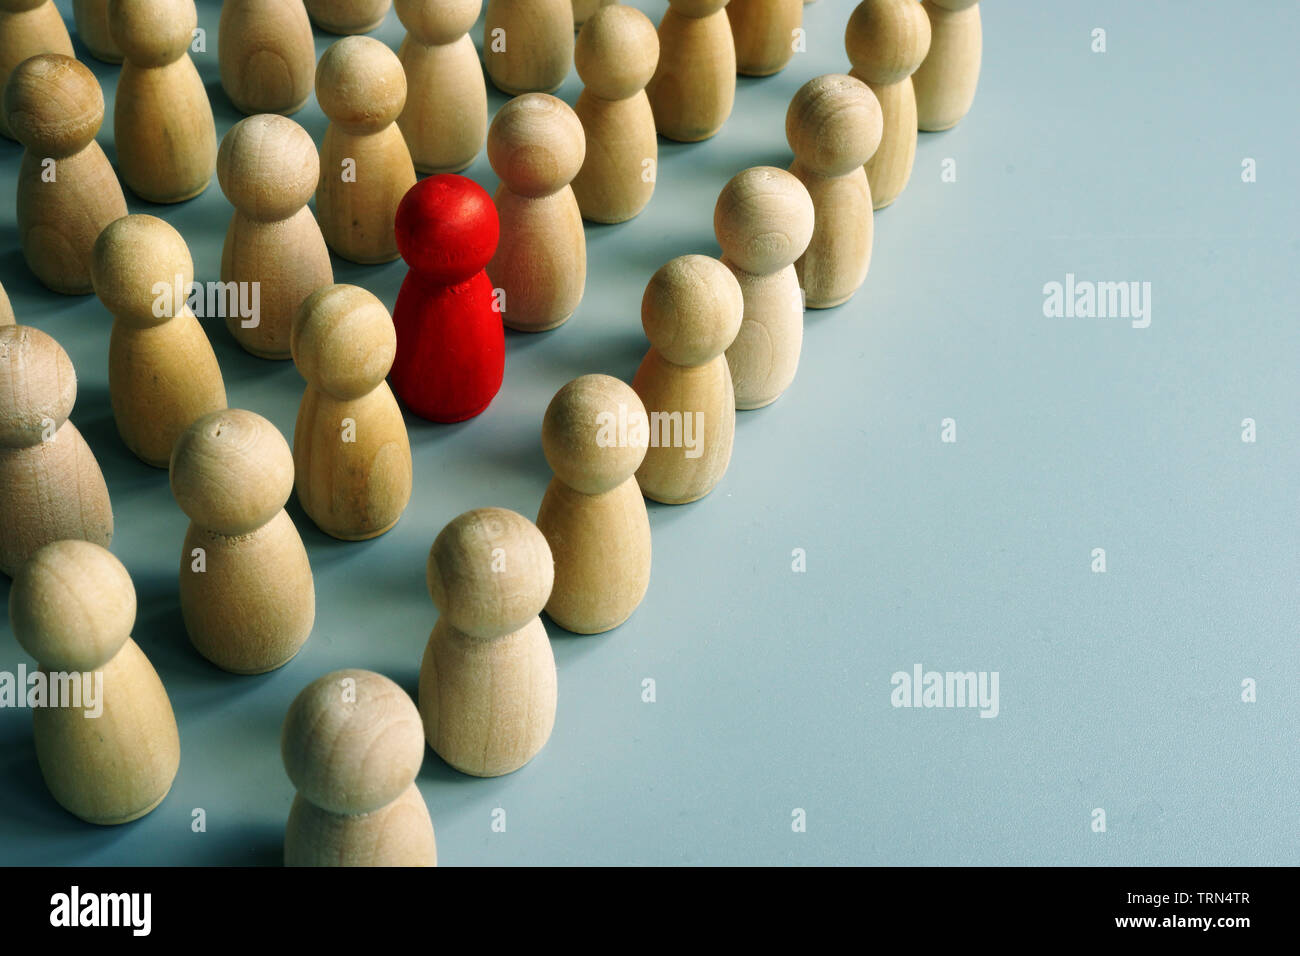 Unique red figurine stand out in the crowd from wooden ones. Stock Photo